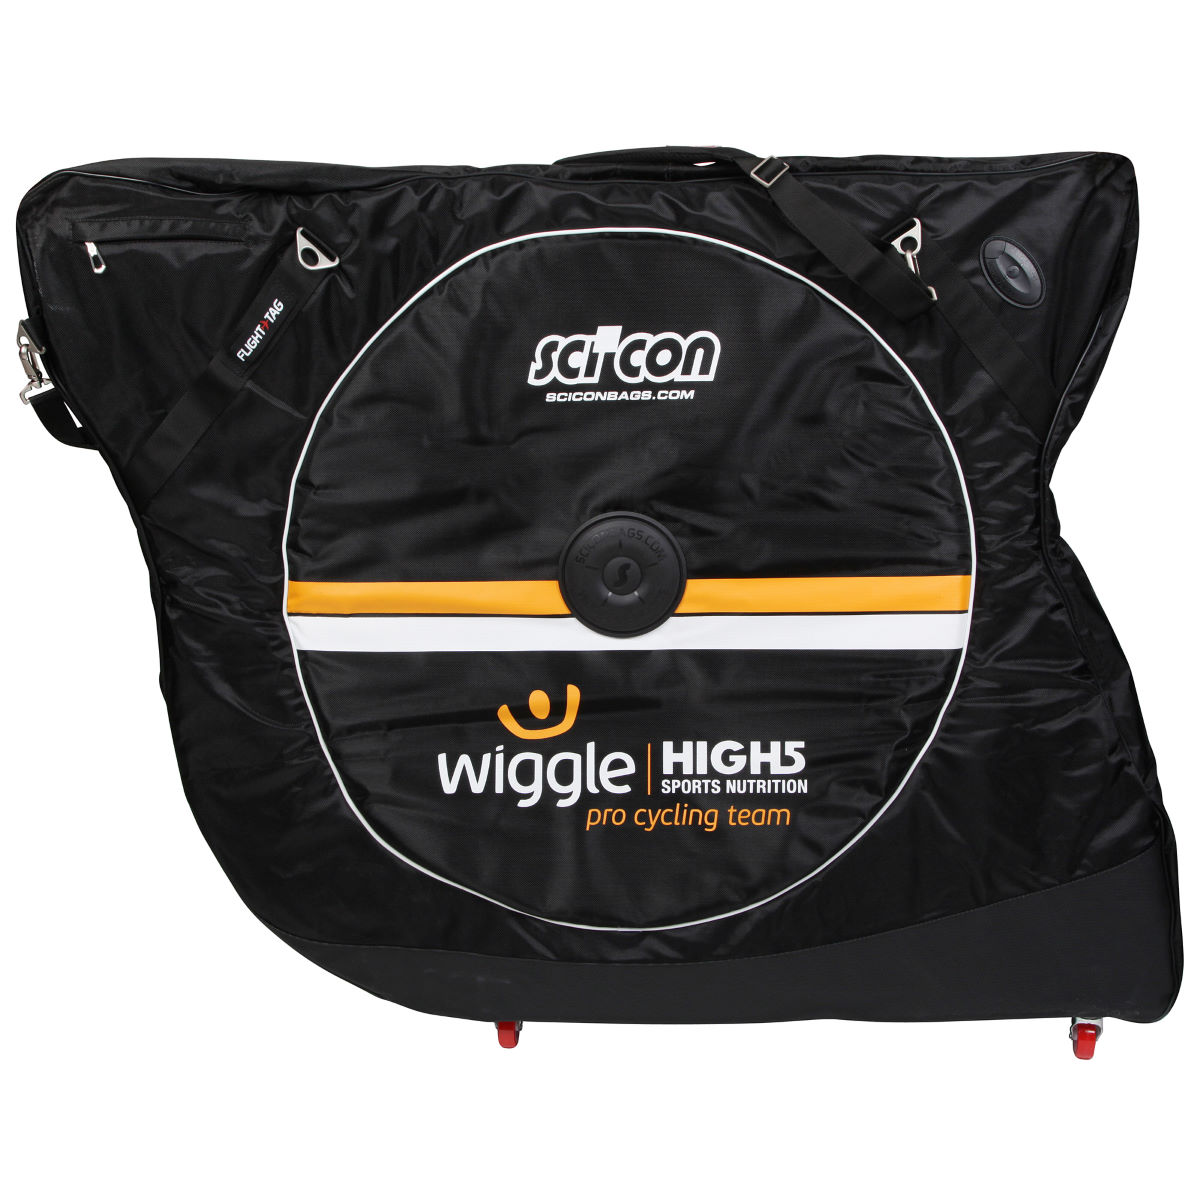 Housse de vélo Scicon Aerocomfort 2.0 TSA (team Wiggle High5) - Noir